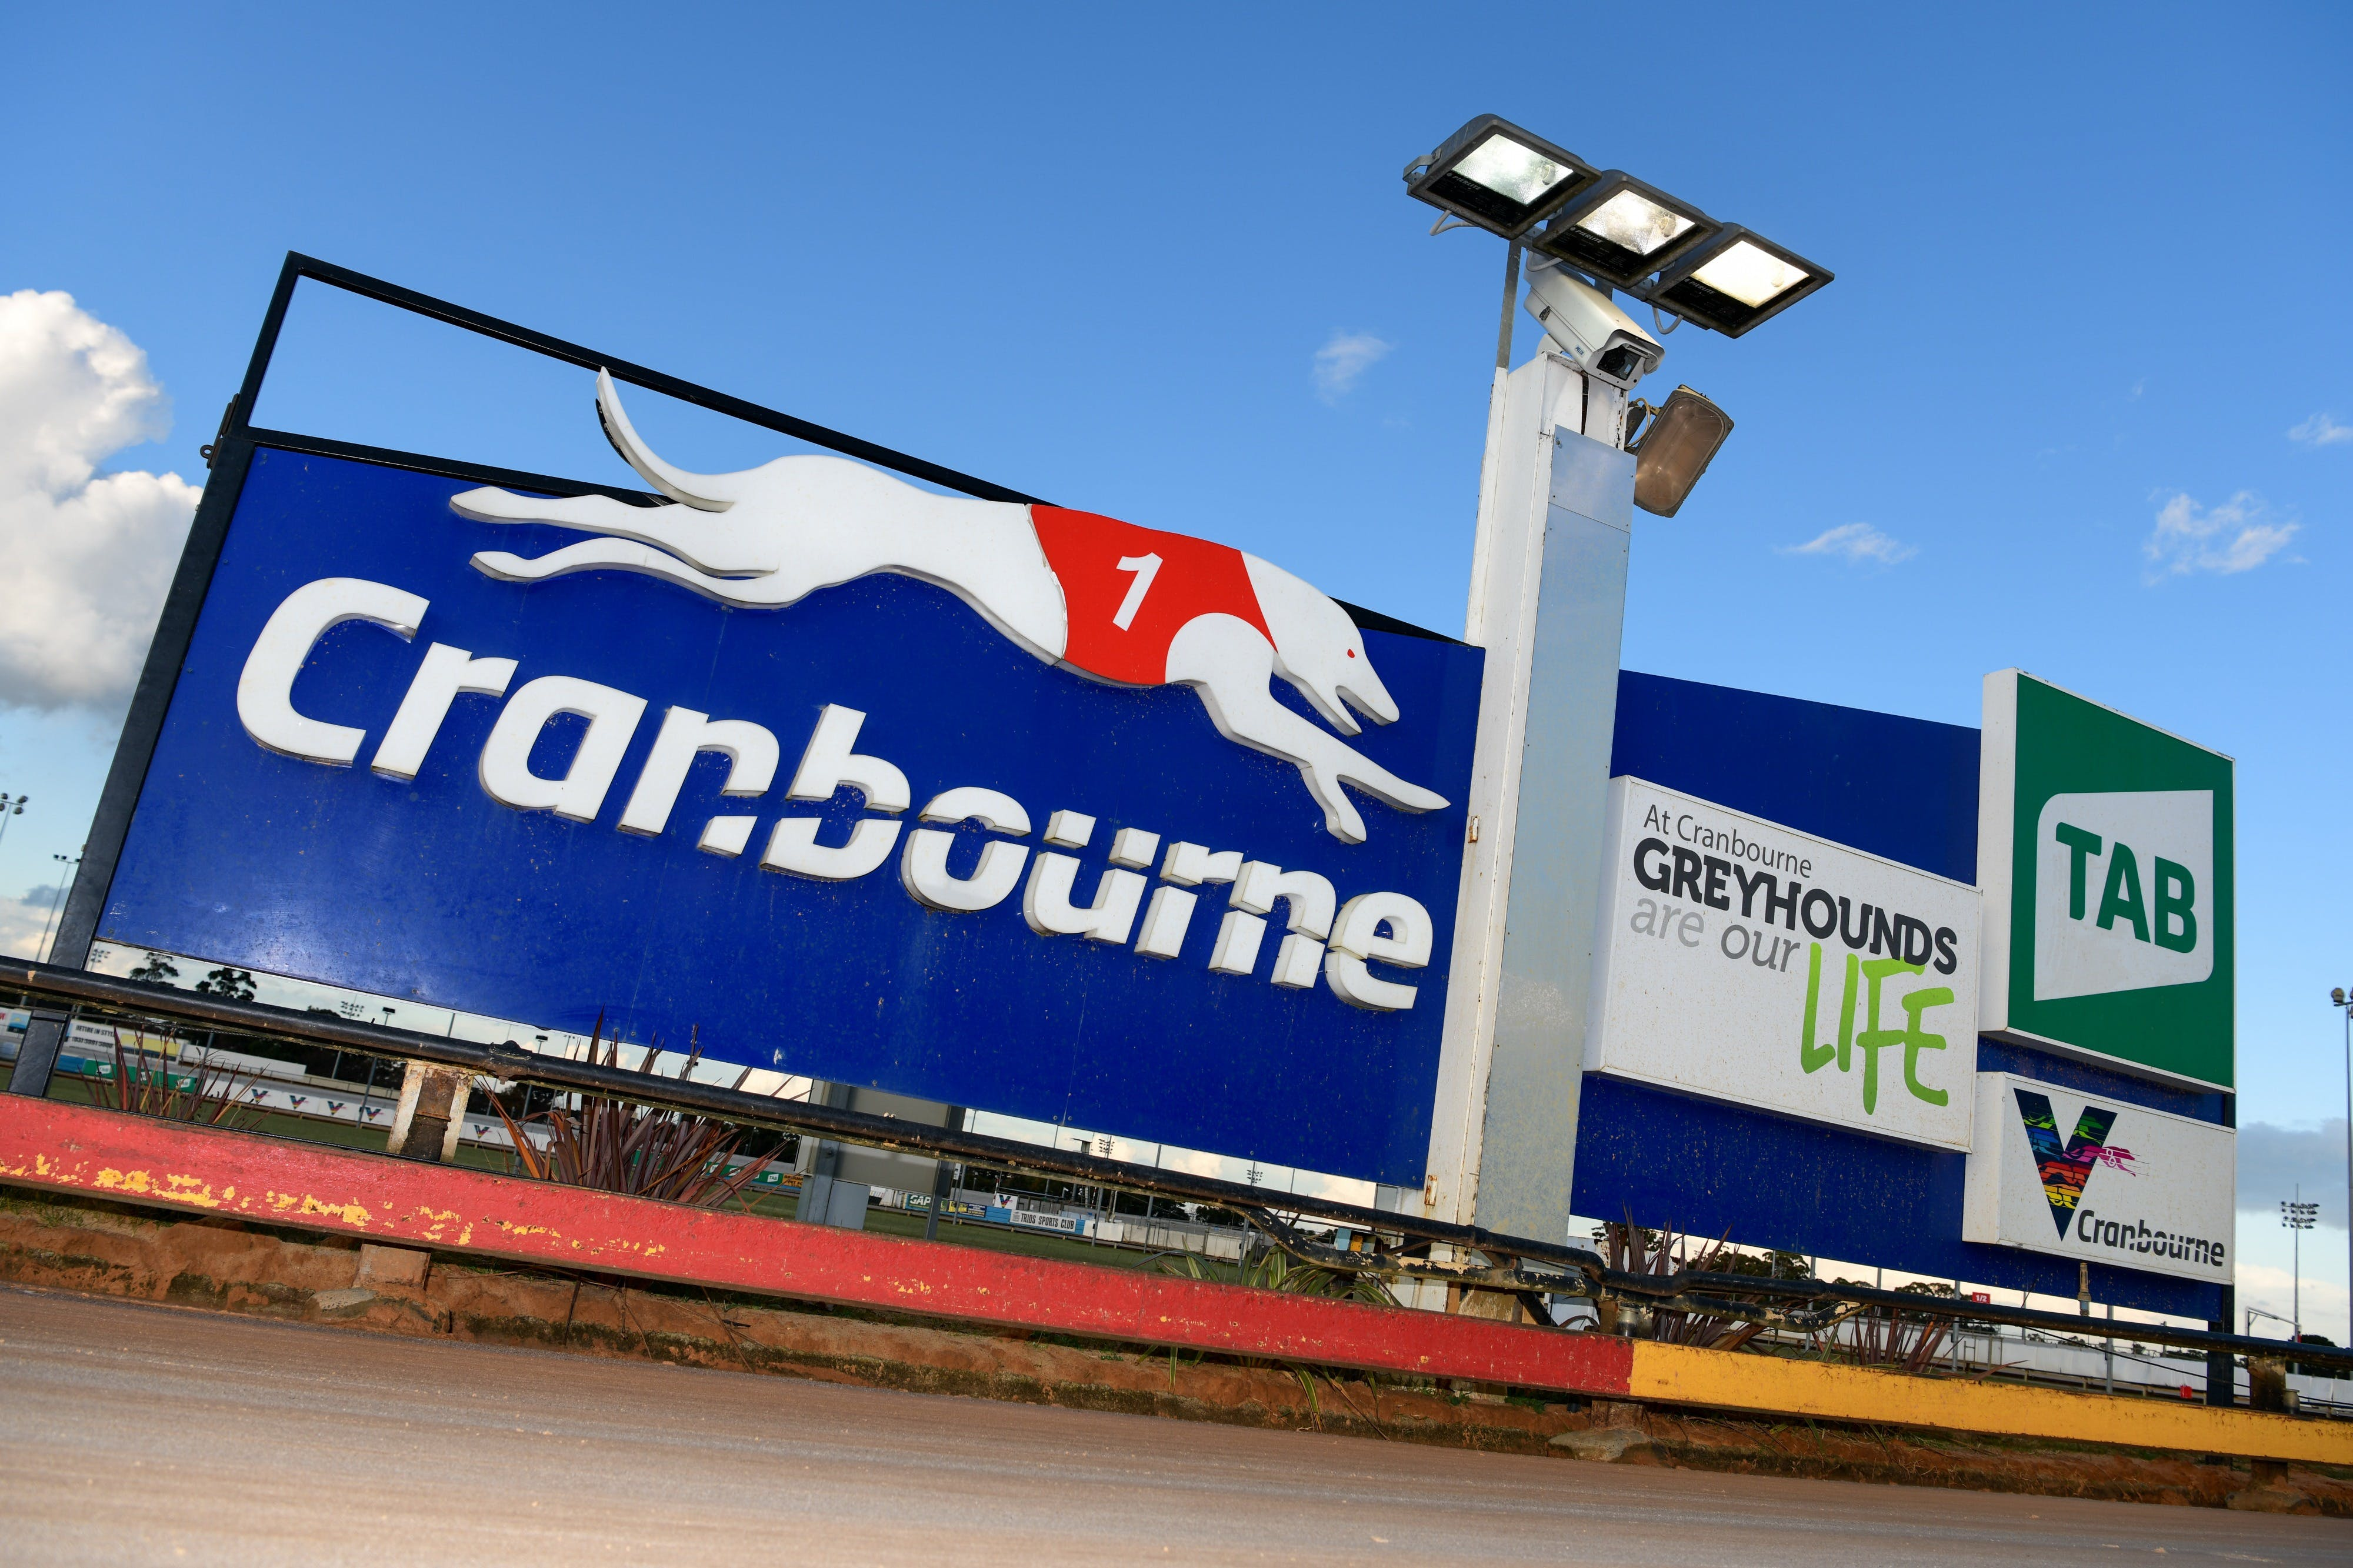 Cranbourne Greyhound Racing Club - QLD Tourism